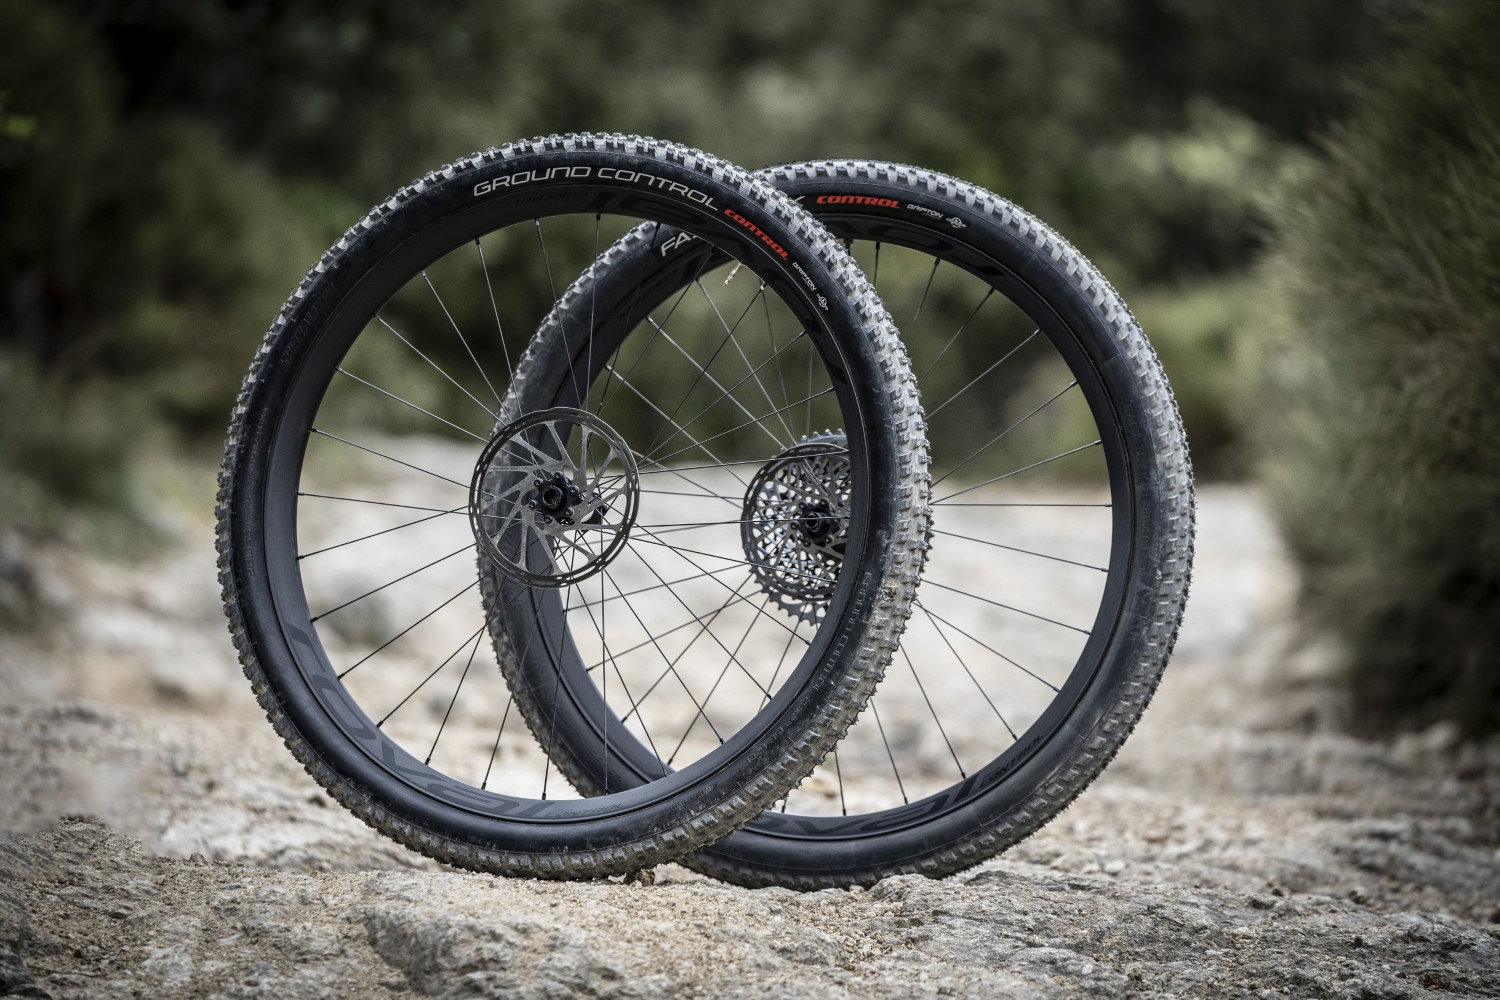 Le nuove ruote SPECIALIZED ROVAL CONTROL 29 CARBON 6B XD